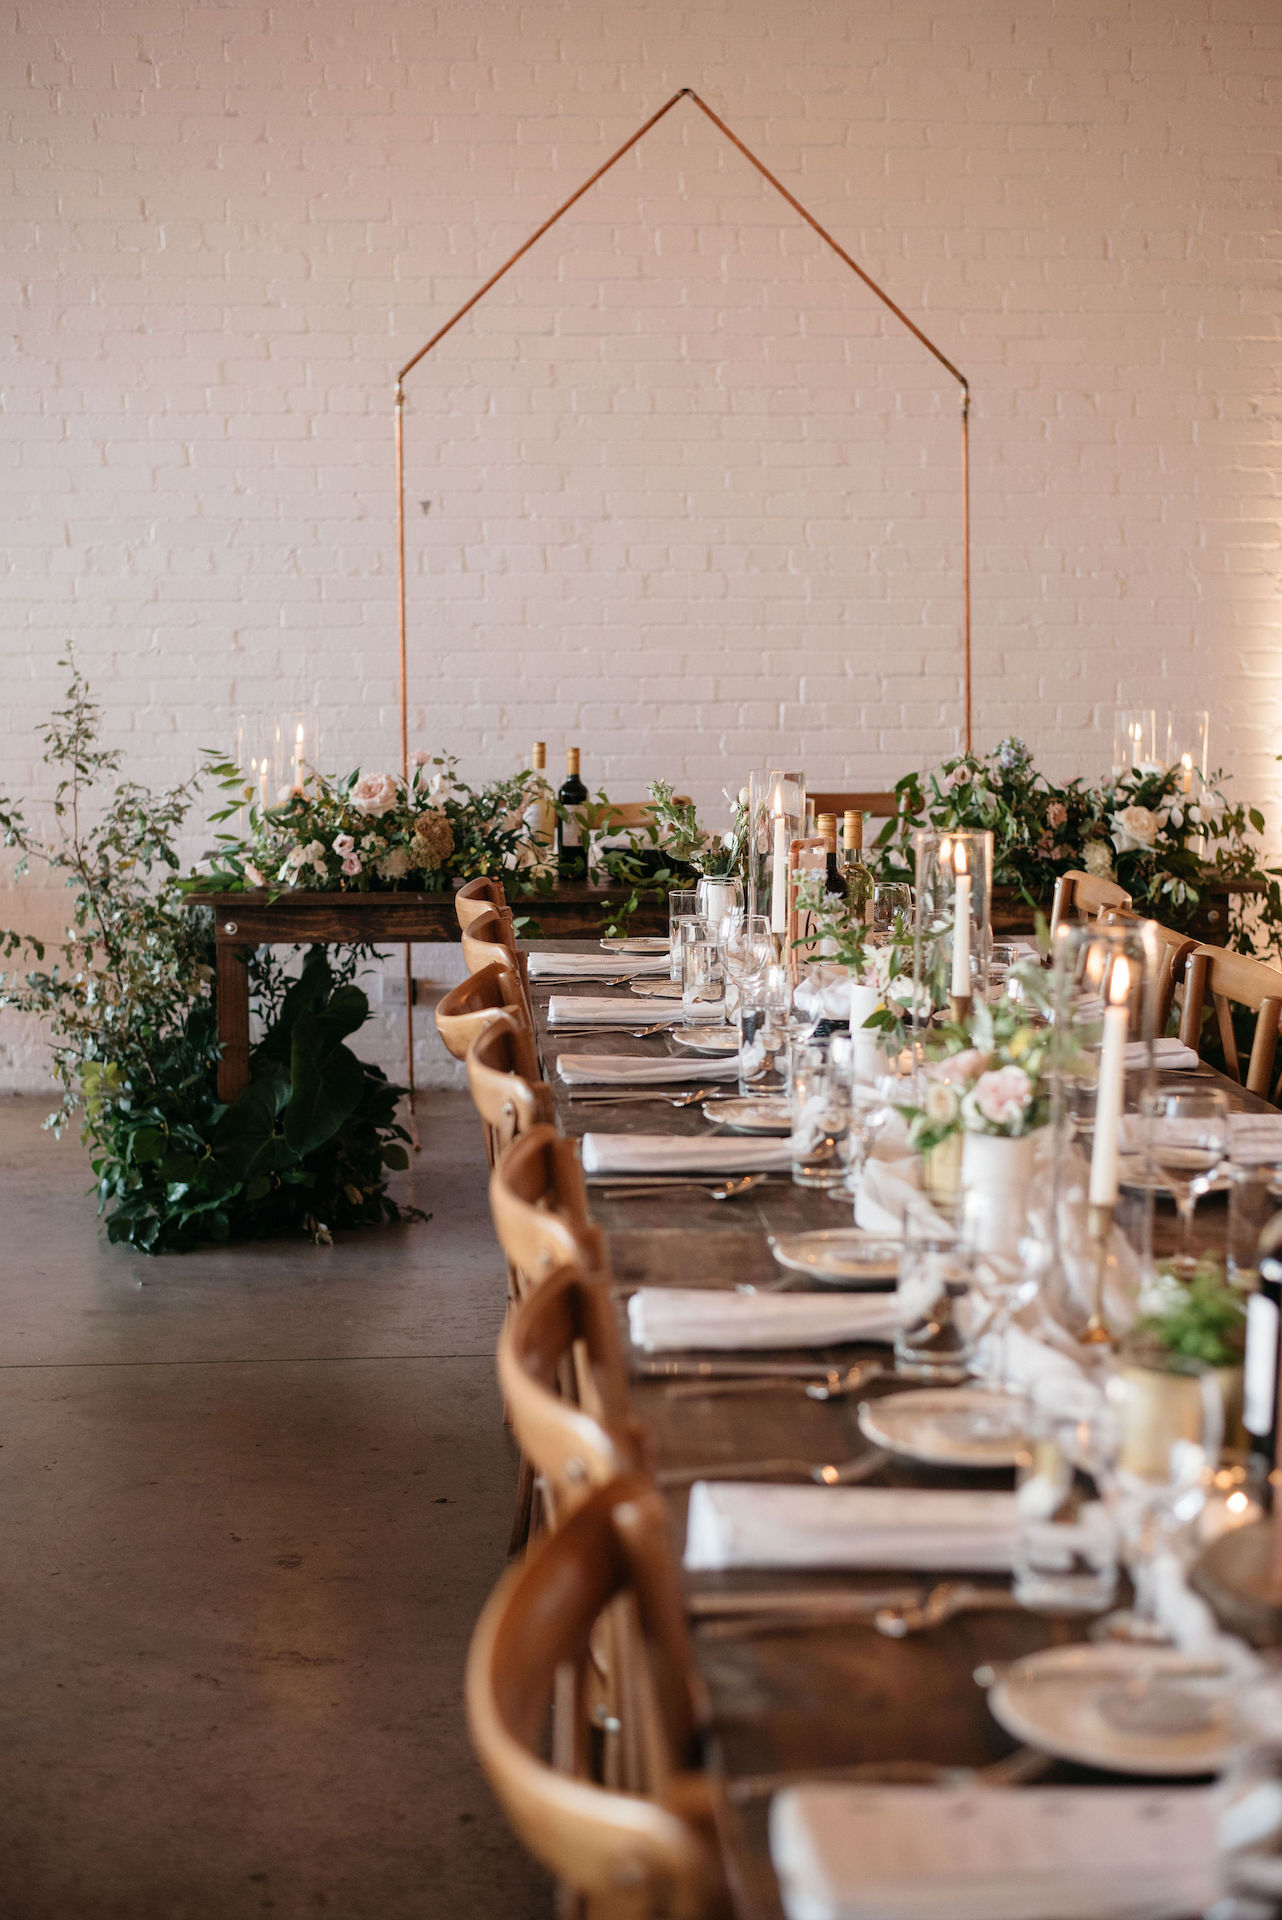 Wedding table and flowers